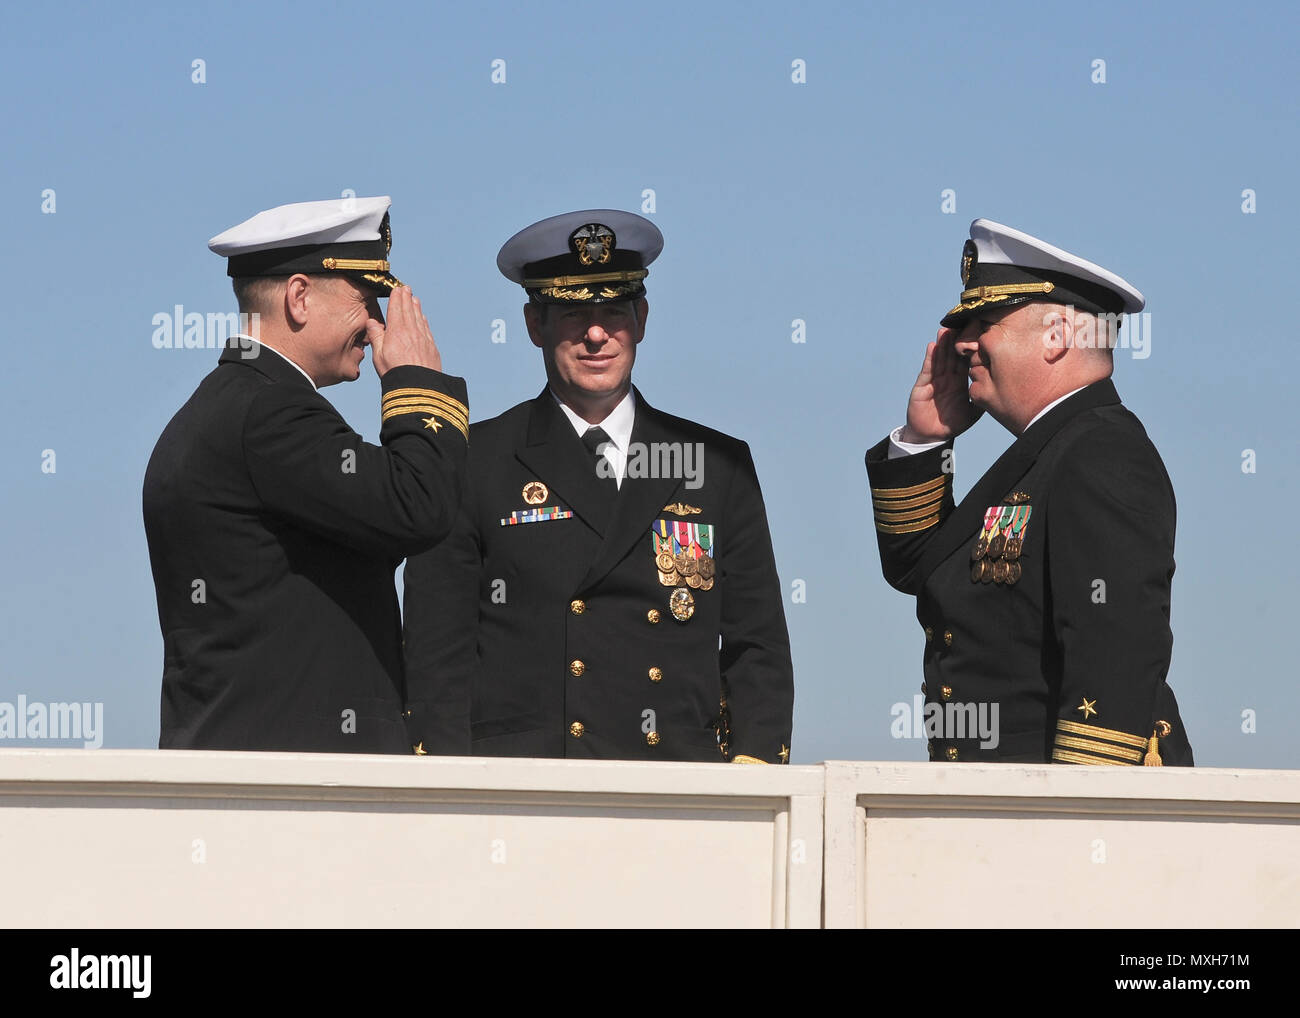 SAN DIEGO (Nov. 4, 2016) – Capt. Daniel Caldwell, right, relieves Cmdr. Jeff Juergens as the commanding officer of the Los Angeles-class fast attack submarine USS San Francisco (SSN 711) during a change of command and farewell ceremony on Naval Base Point Loma, Nov. 4. The San Francisco is scheduled to shift homeports to Norfolk, Va. to begin a two year conversion process to become a moored training ship at the Nuclear Power Training Unit in Charleston, S.C.  (U.S. Navy photo by Petty Officer 1st Class Ronald Gutridge/Released) - Stock Image